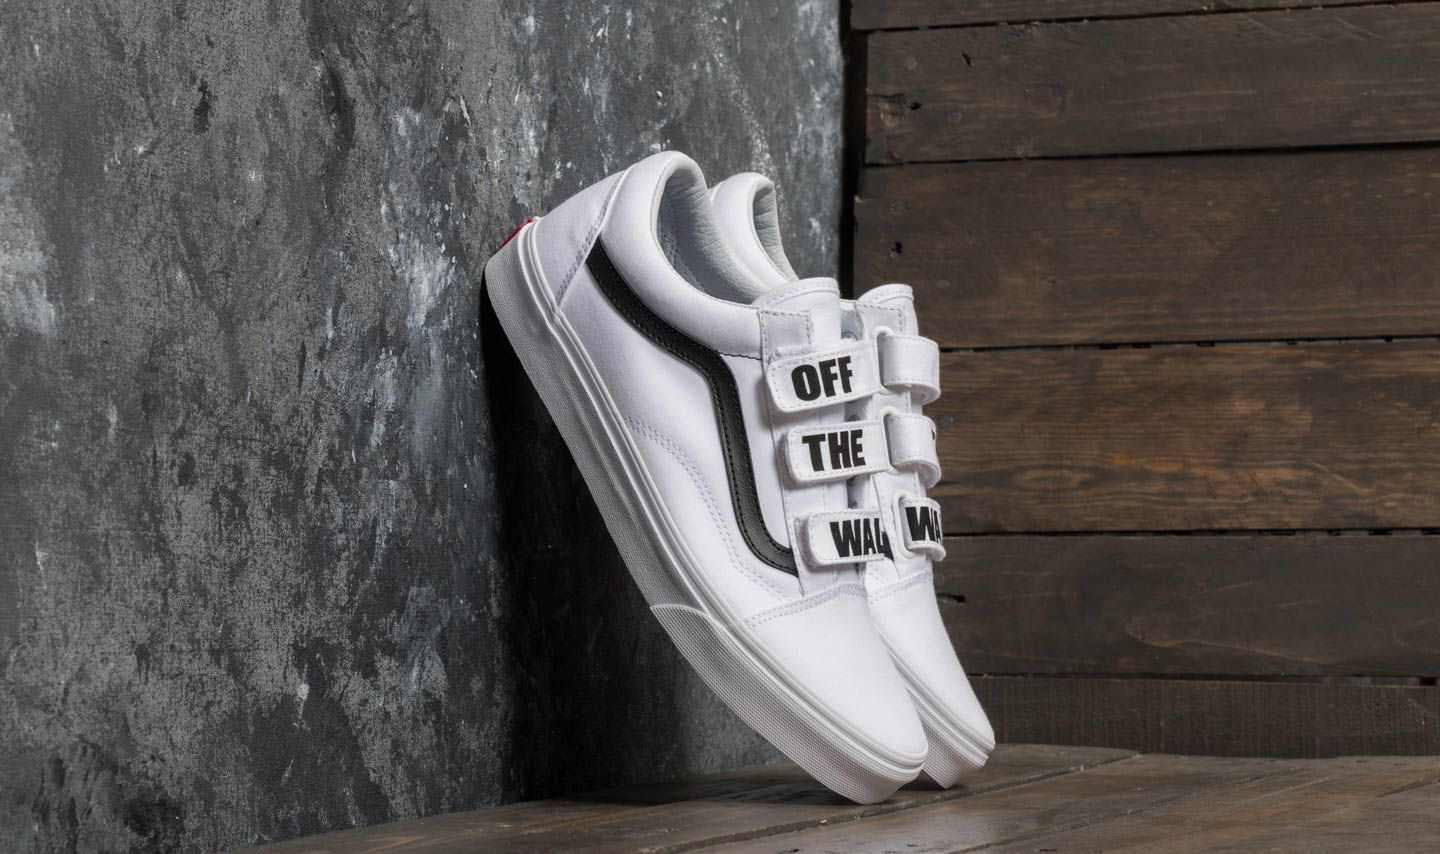 Vans White True The Wall Old Off Skool V 8zpf8q1